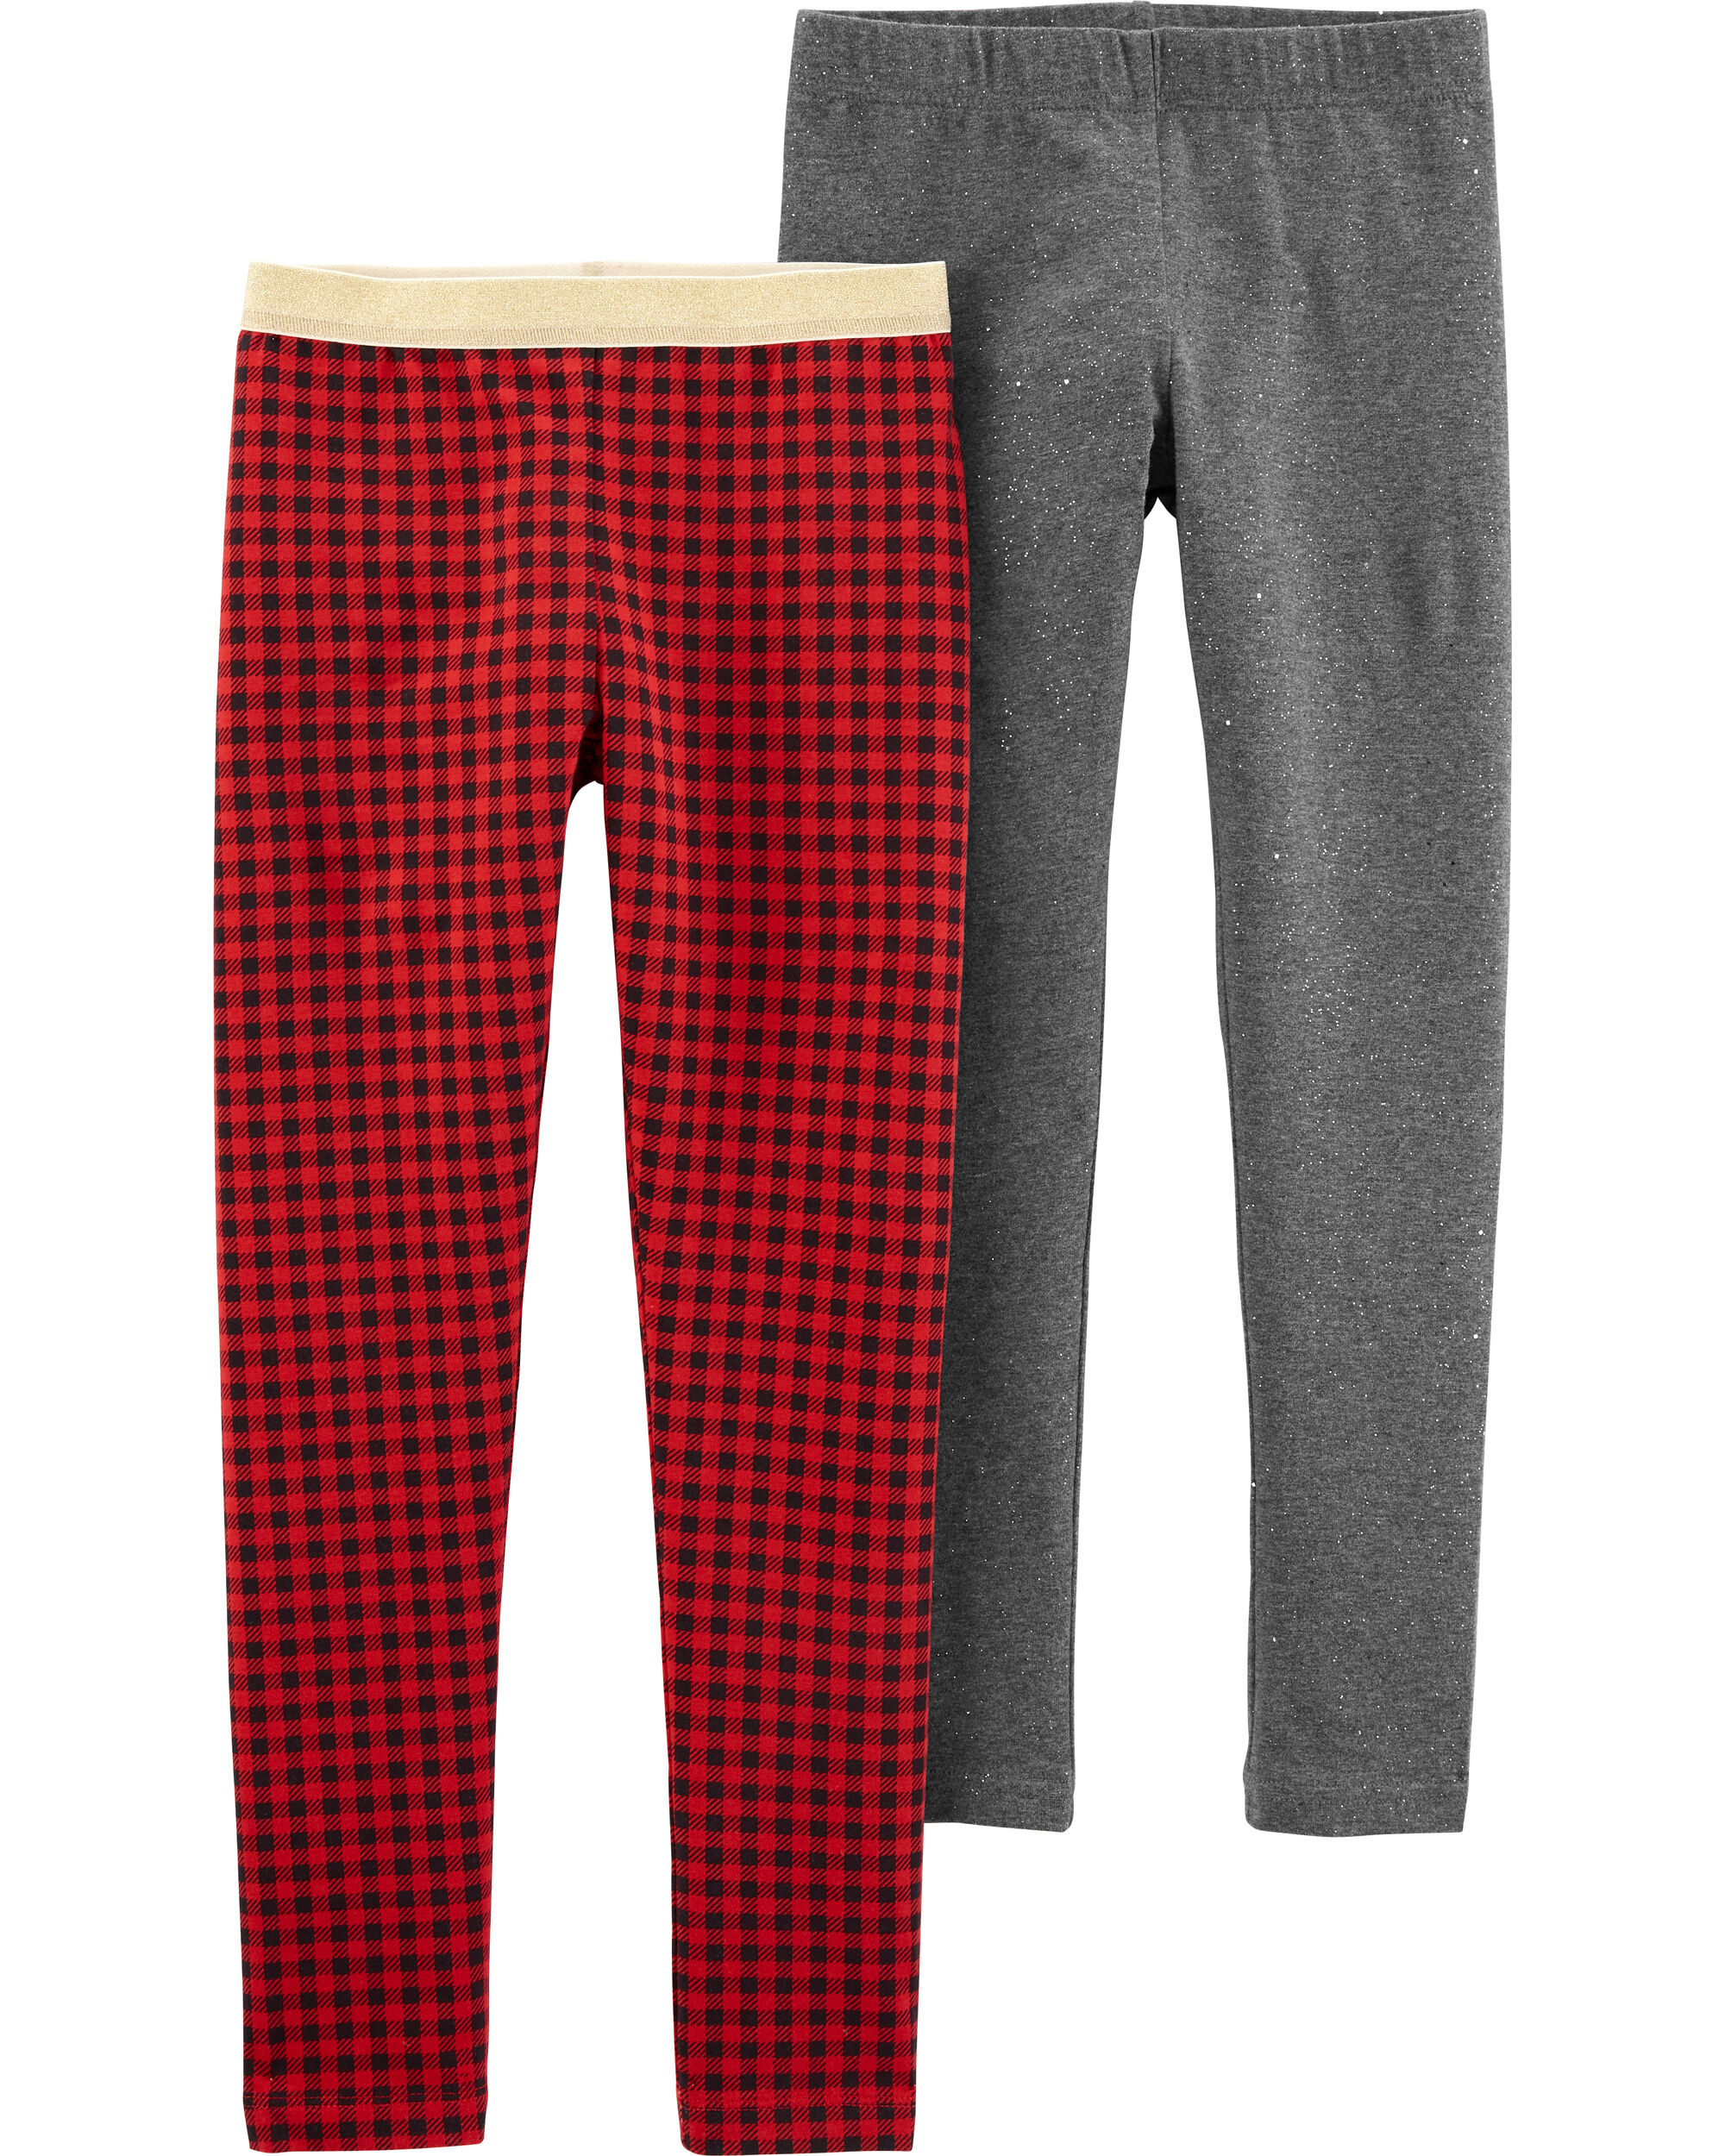 *CLEARANCE* 2-Pack Holiday Leggings